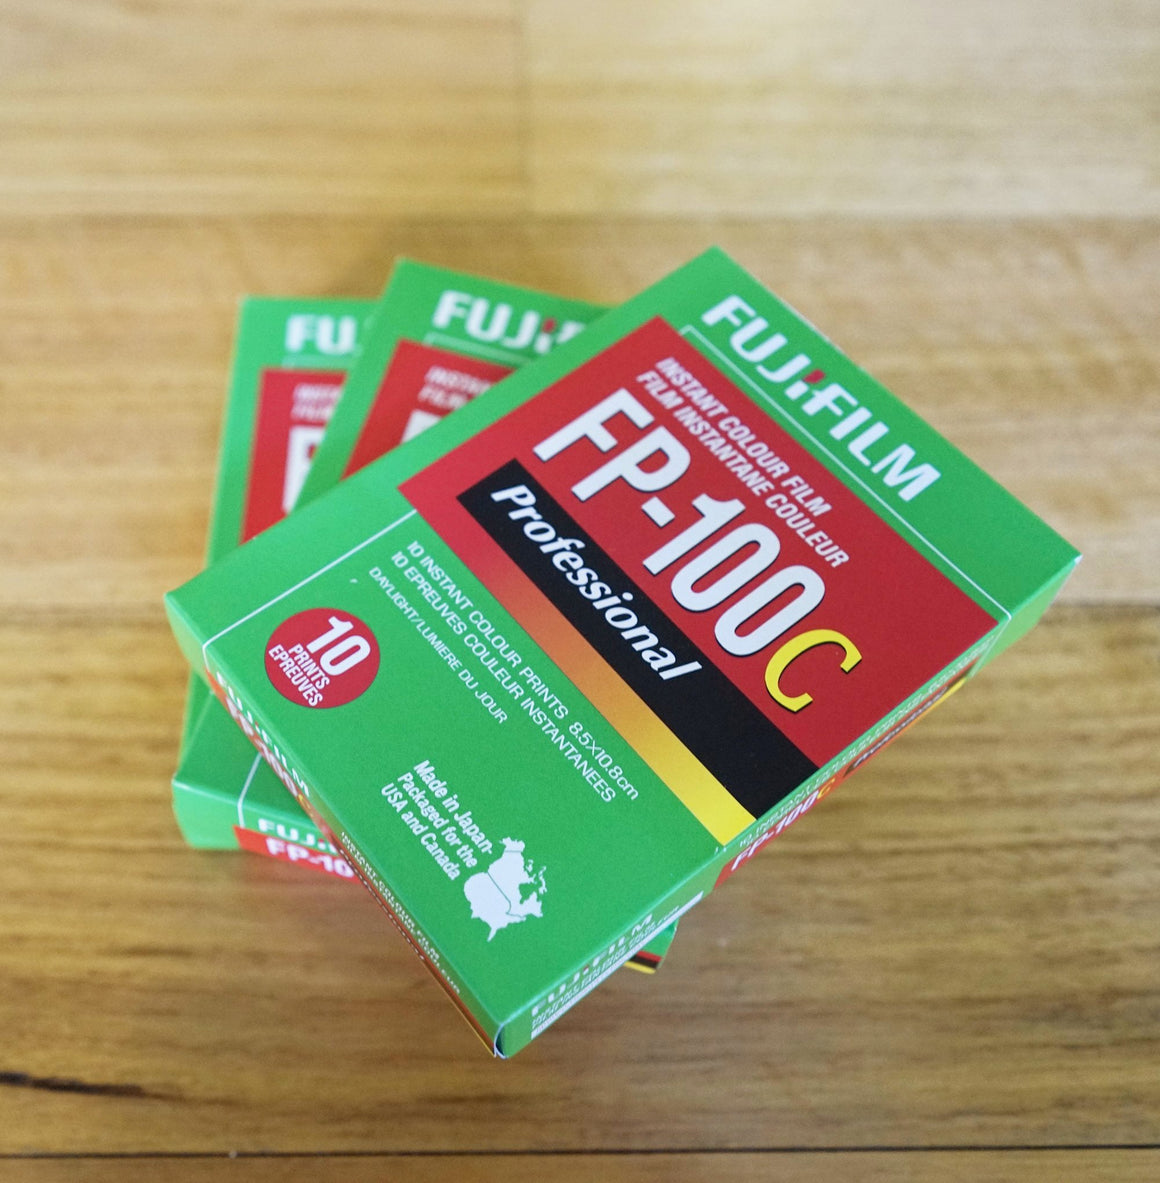 Fujifilm Detachment-type instant film FP-100C Professional 3.25x4.25 Japan Fs